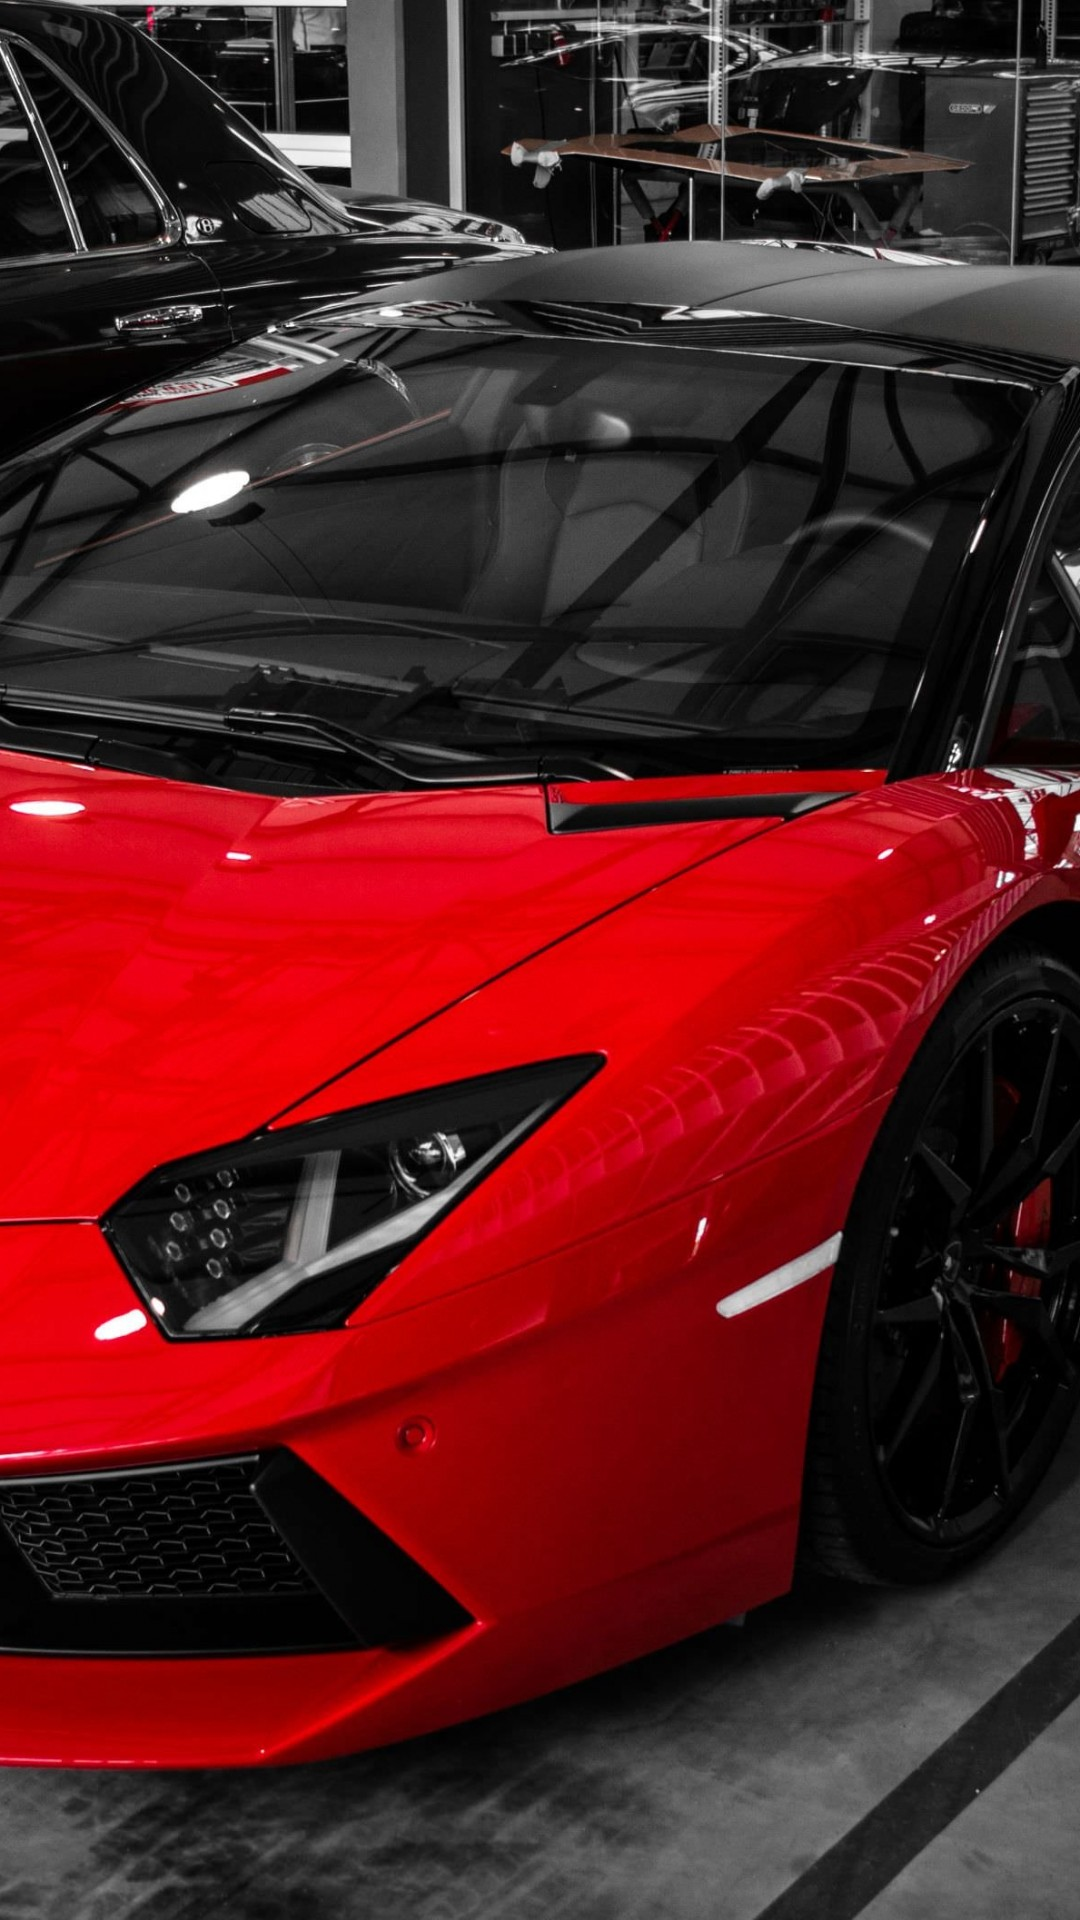 Download Red Lamborghini Aventador Hd Wallpaper For Xperia